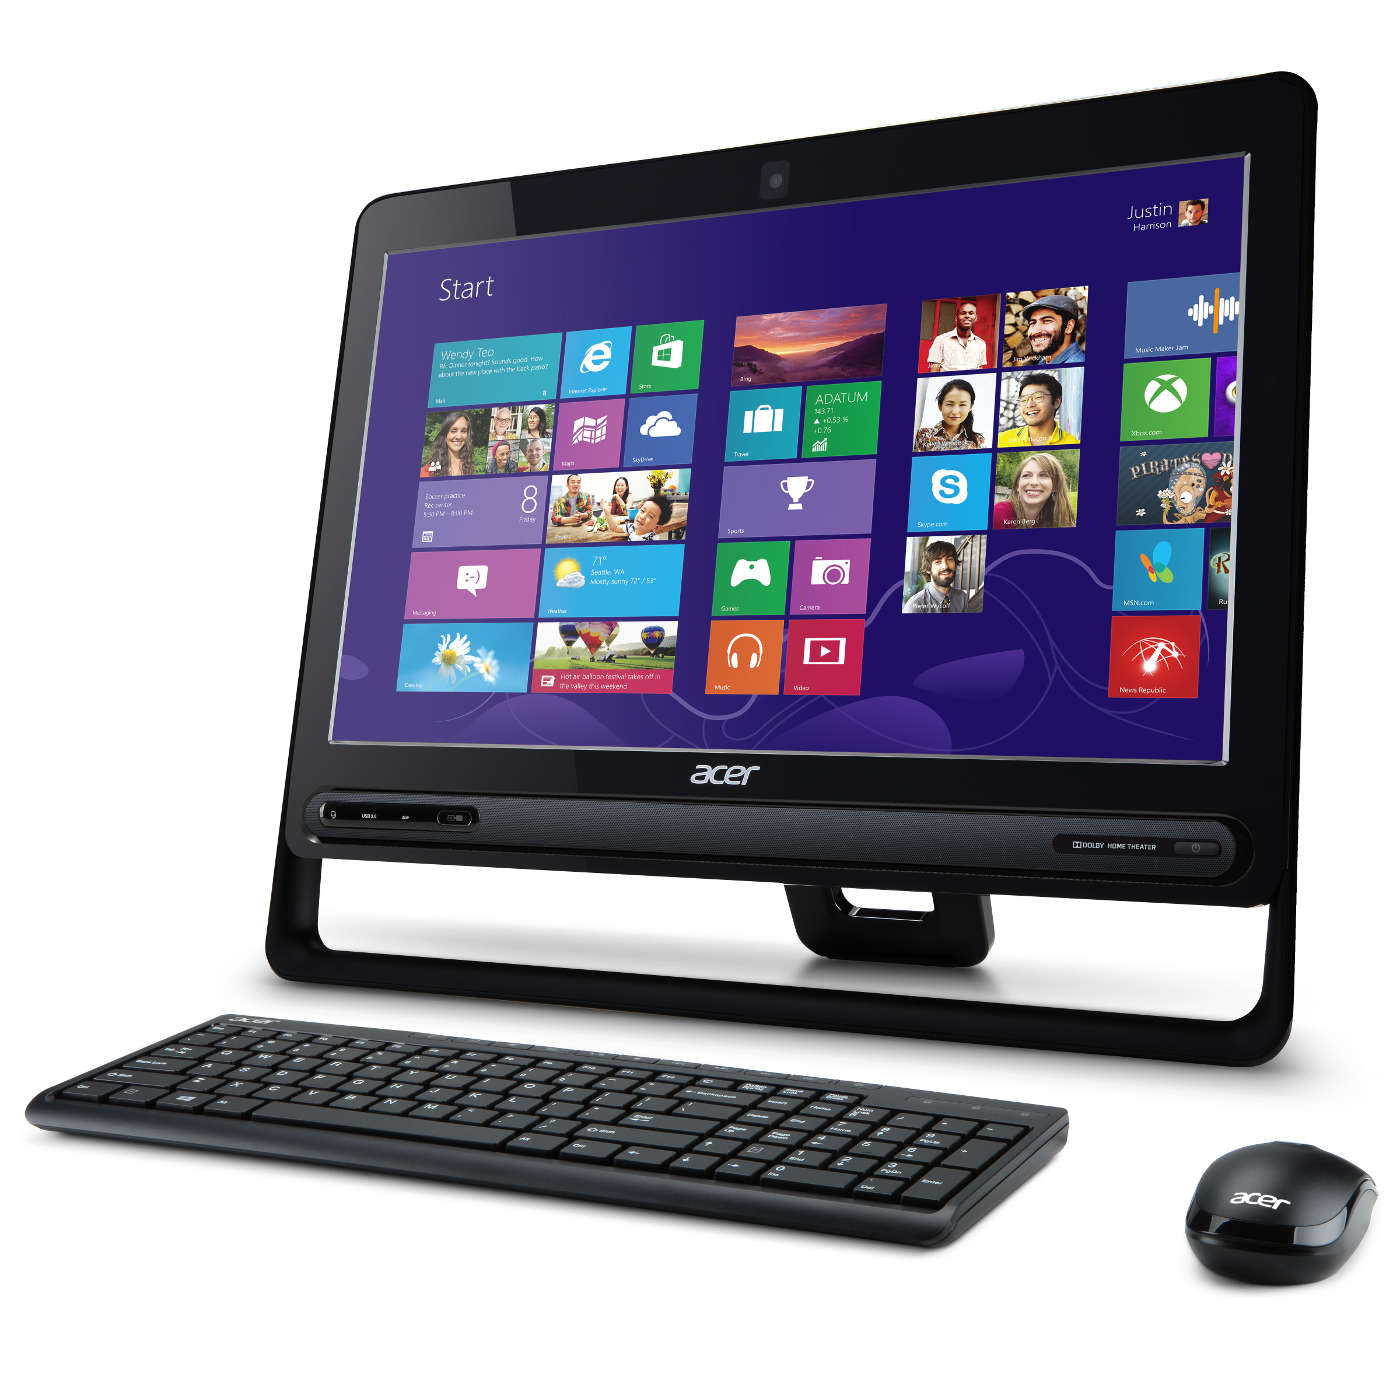 acer aspire zc 610 dq pc de bureau acer sur ldlc. Black Bedroom Furniture Sets. Home Design Ideas